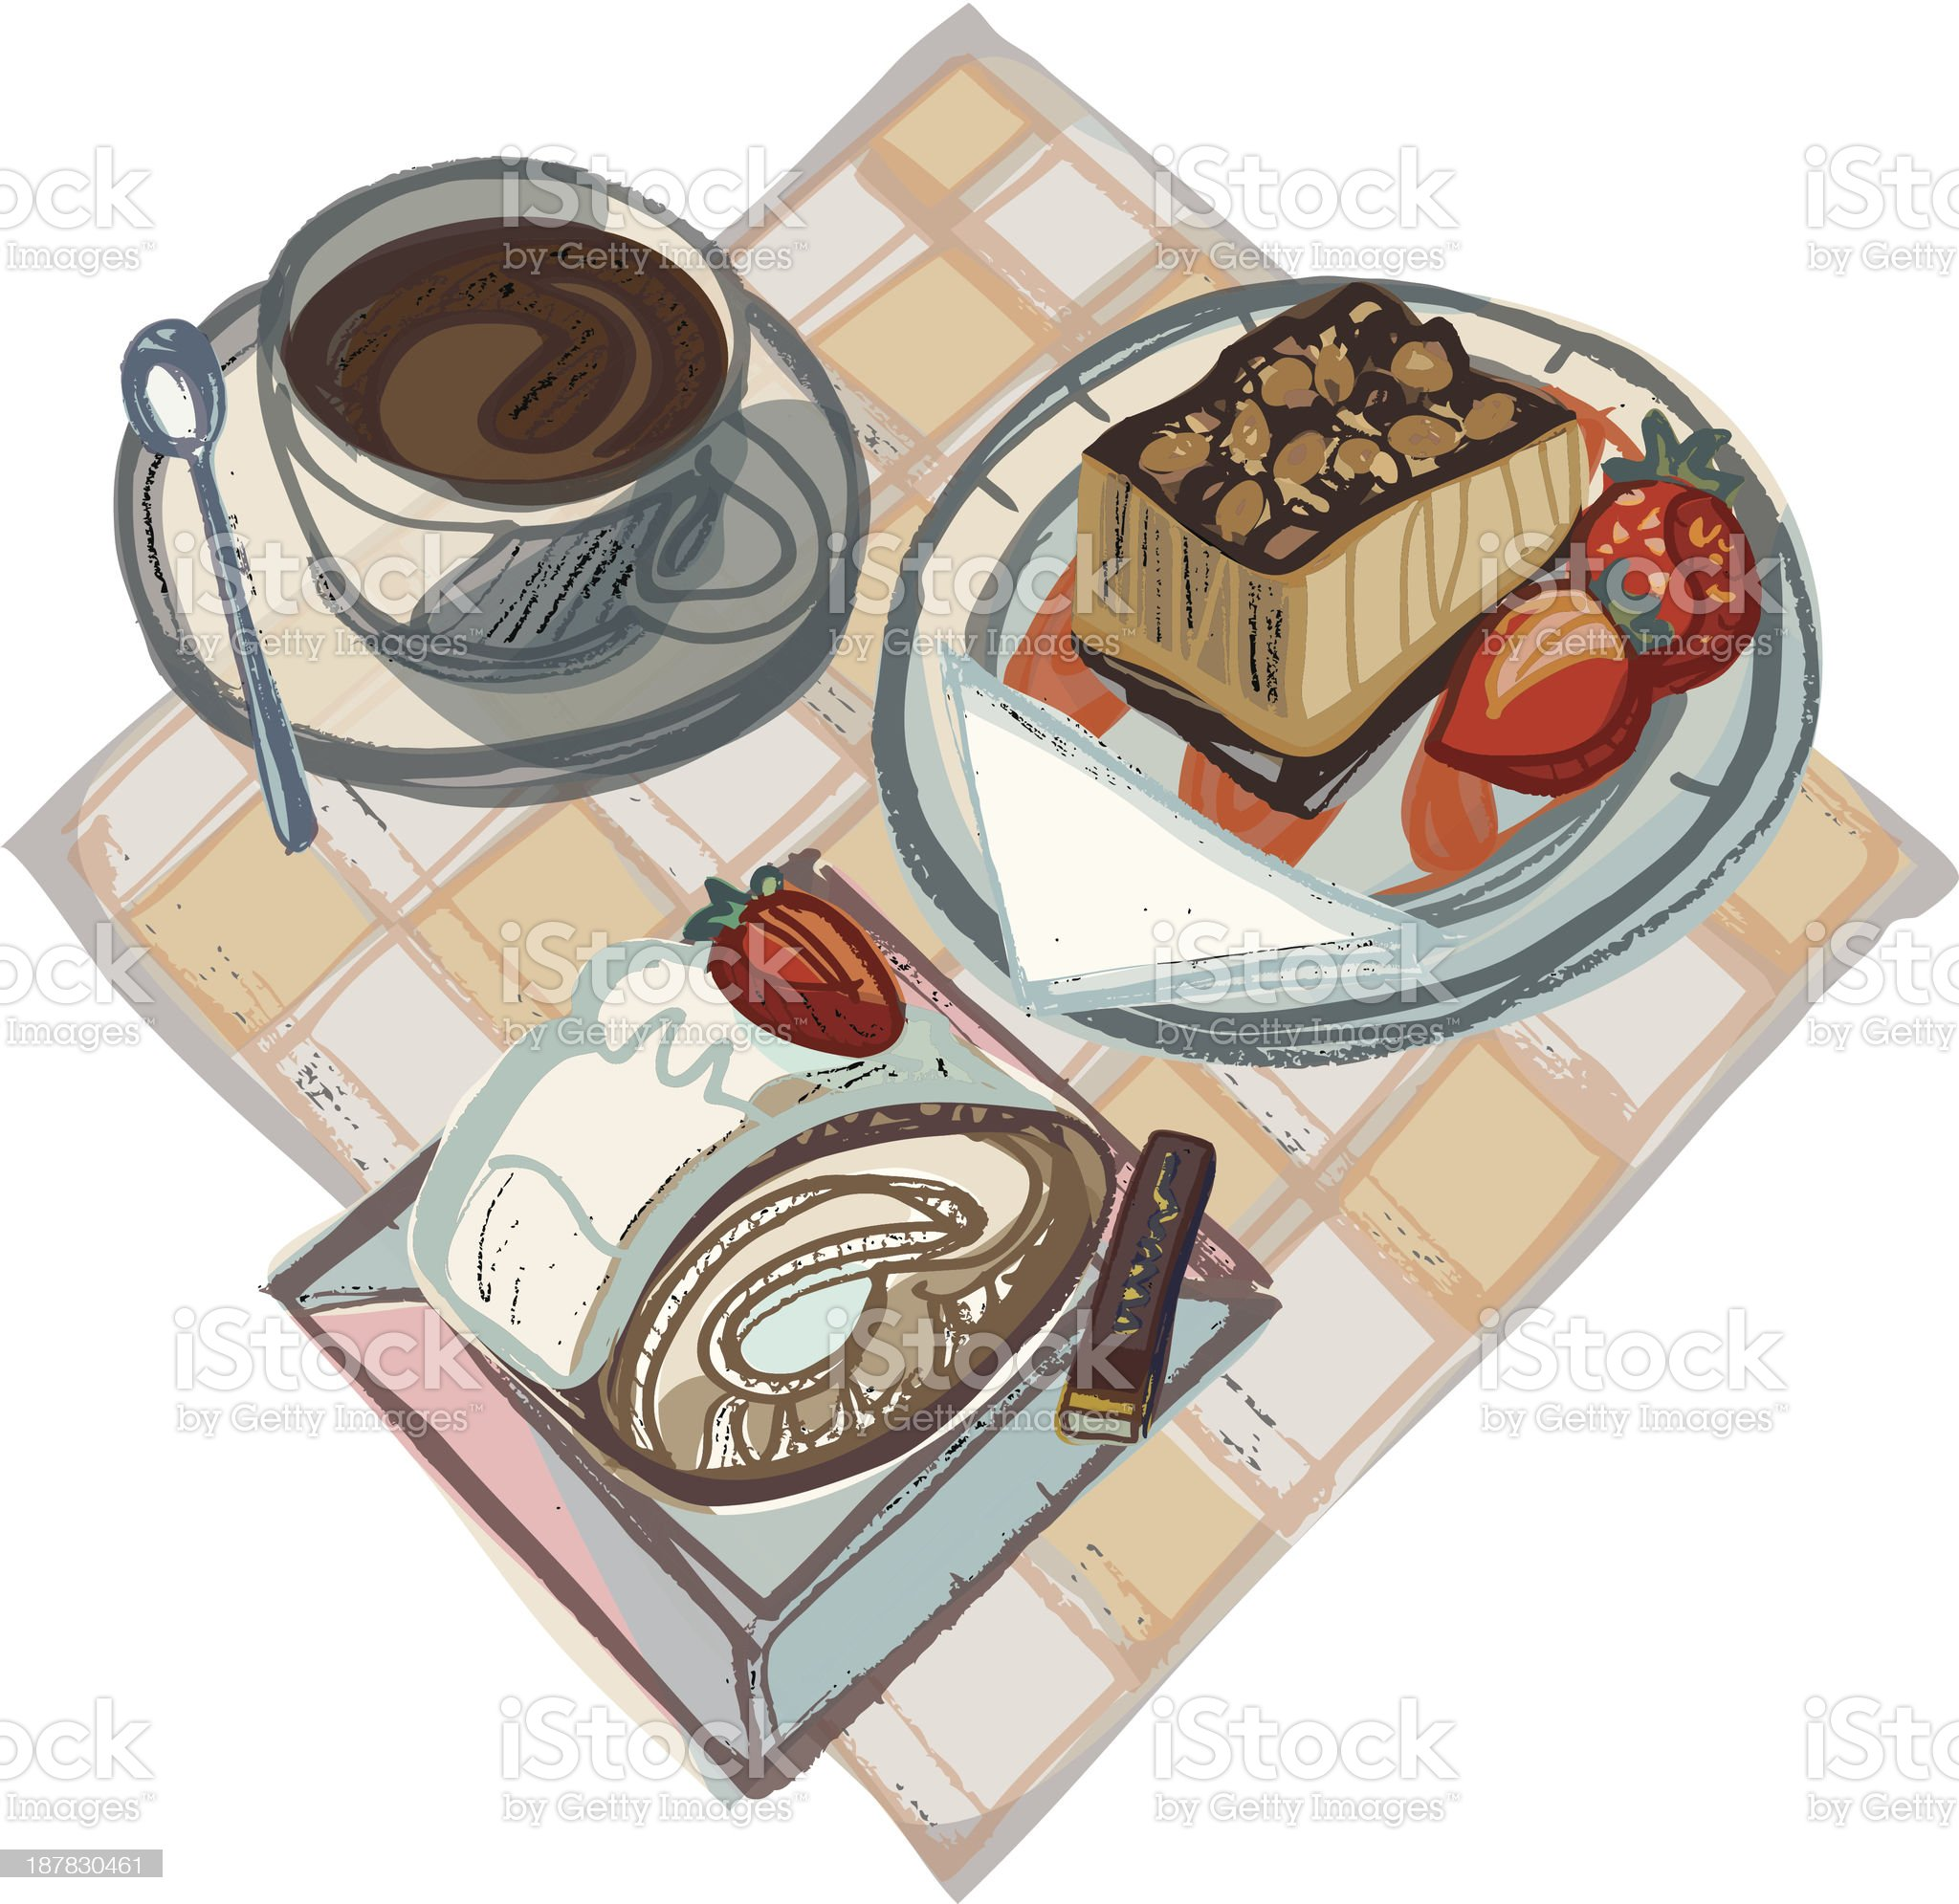 Coffee with Strawberry Cake, Swiss Gateau and Chocolate royalty-free stock vector art